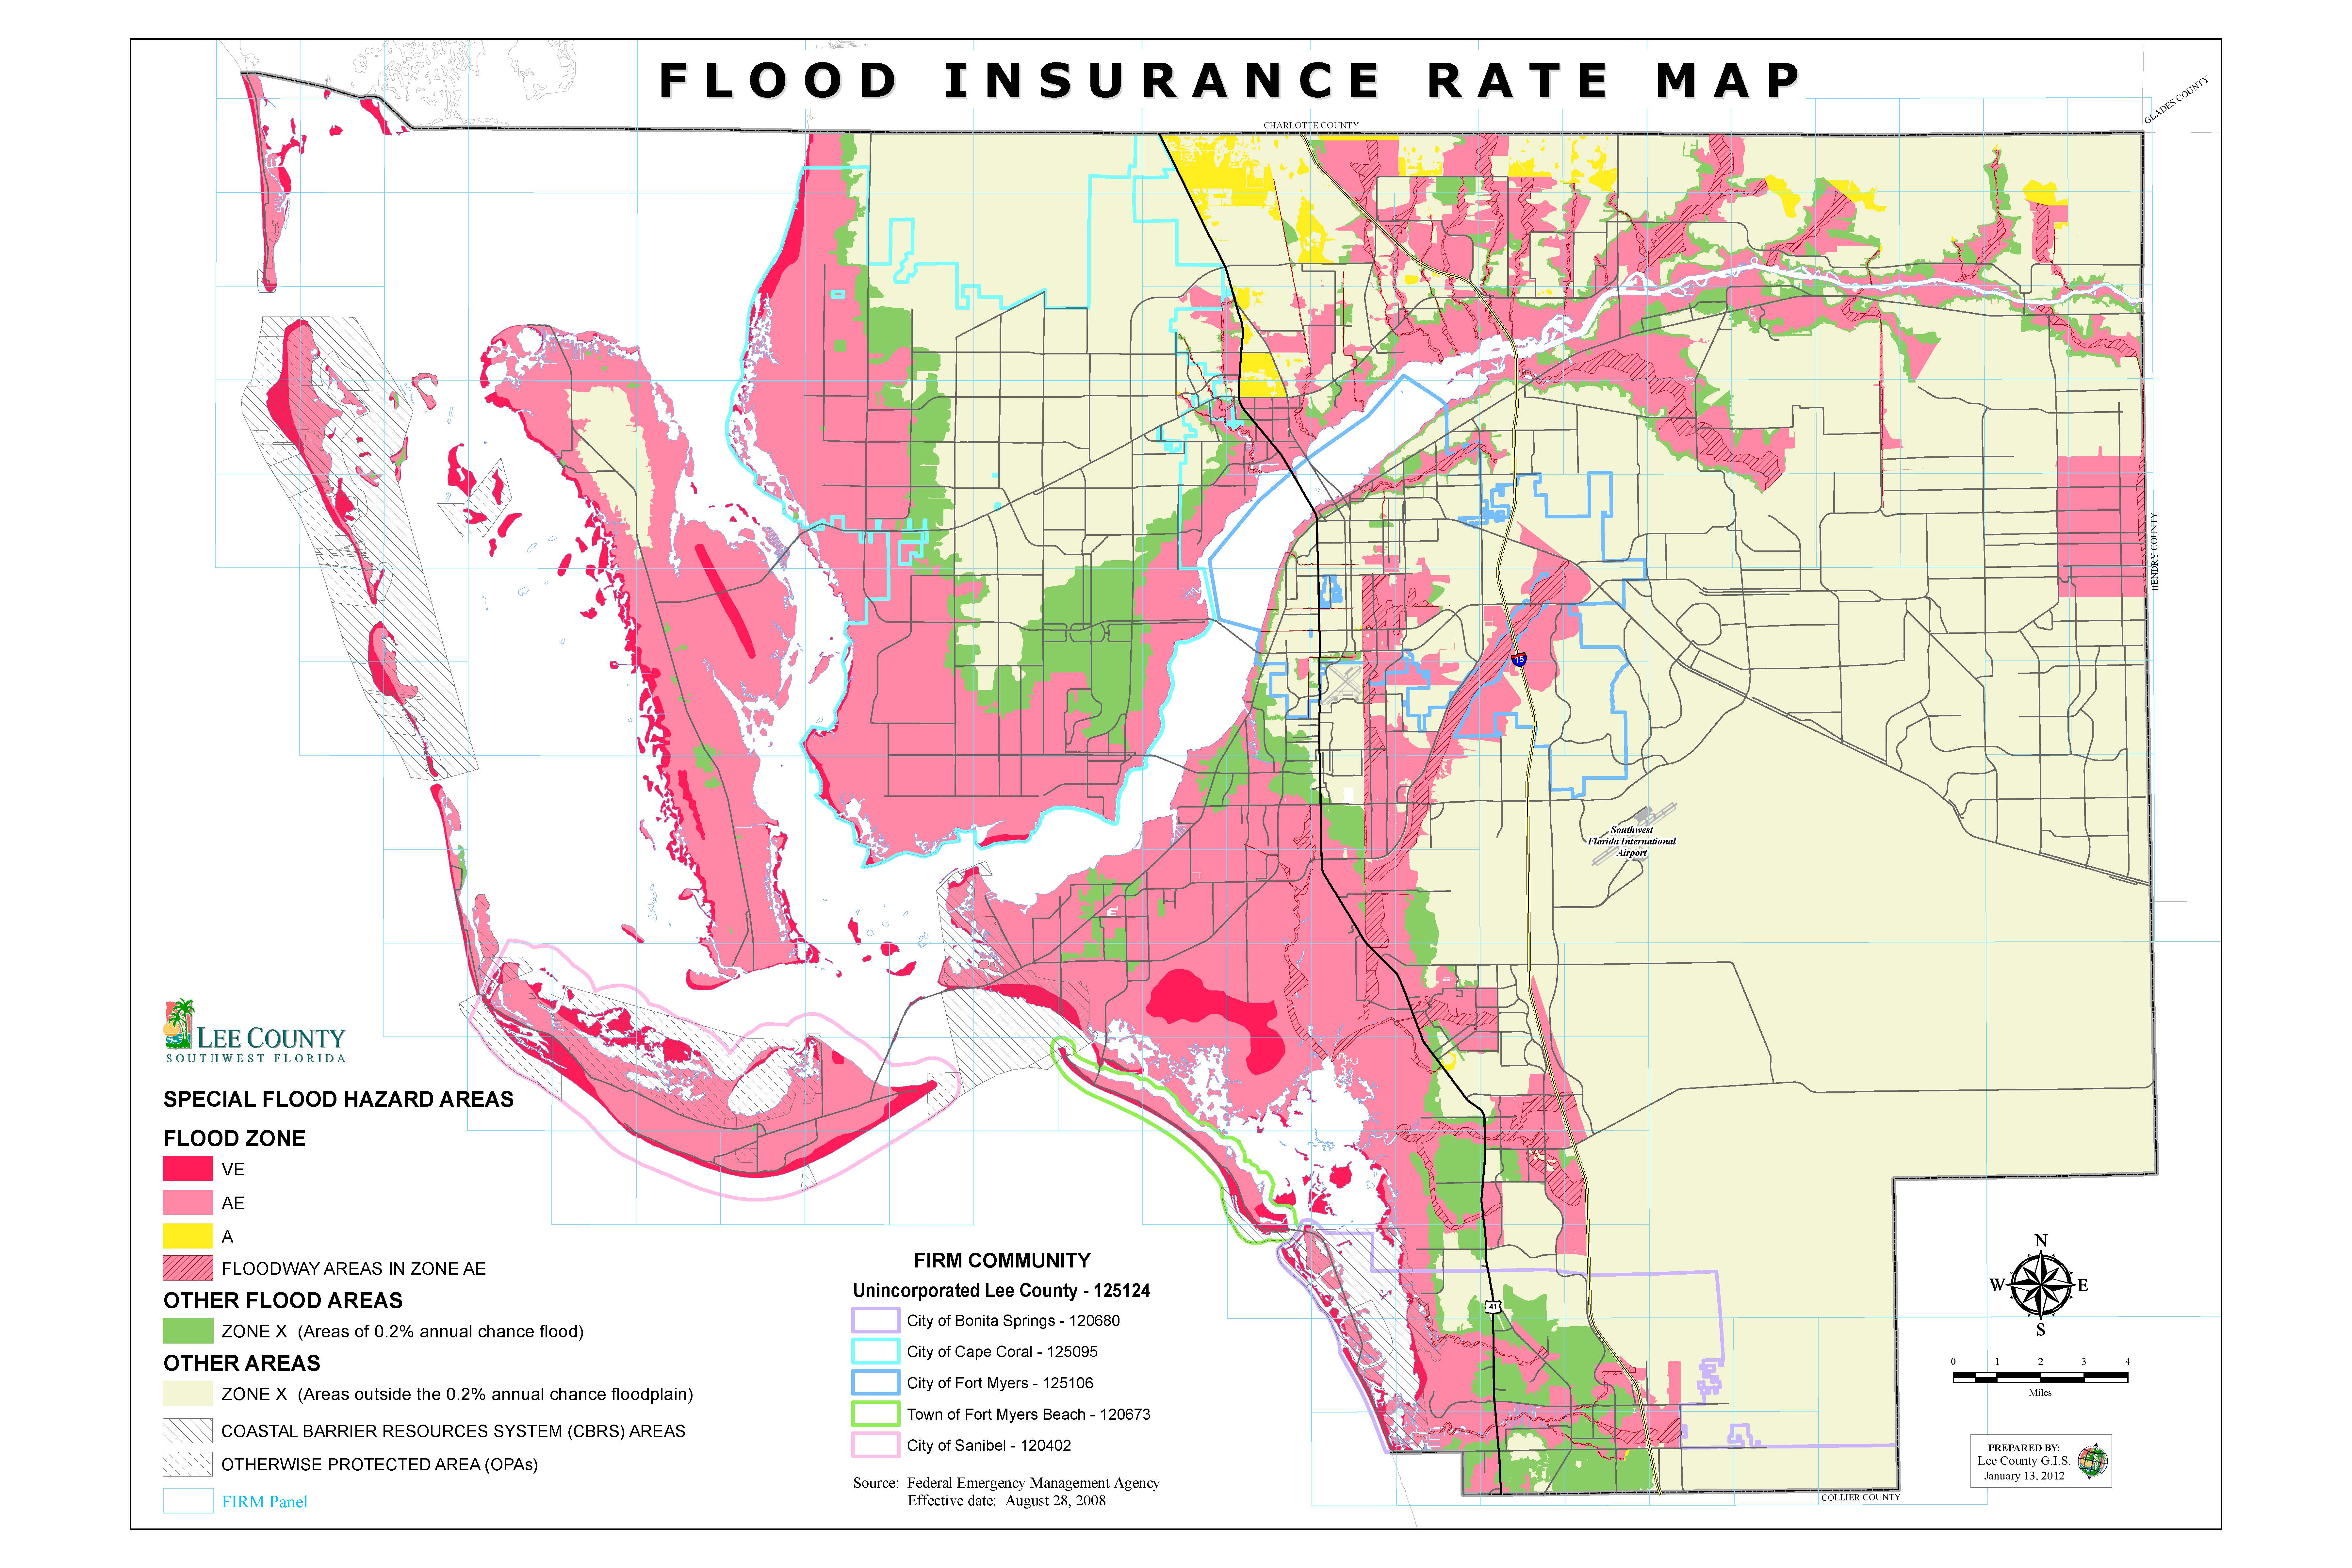 Firm Map Florida Flood Insurance Rate Map Florida Perfect Firm Maps - Flood Insurance Rate Map Florida